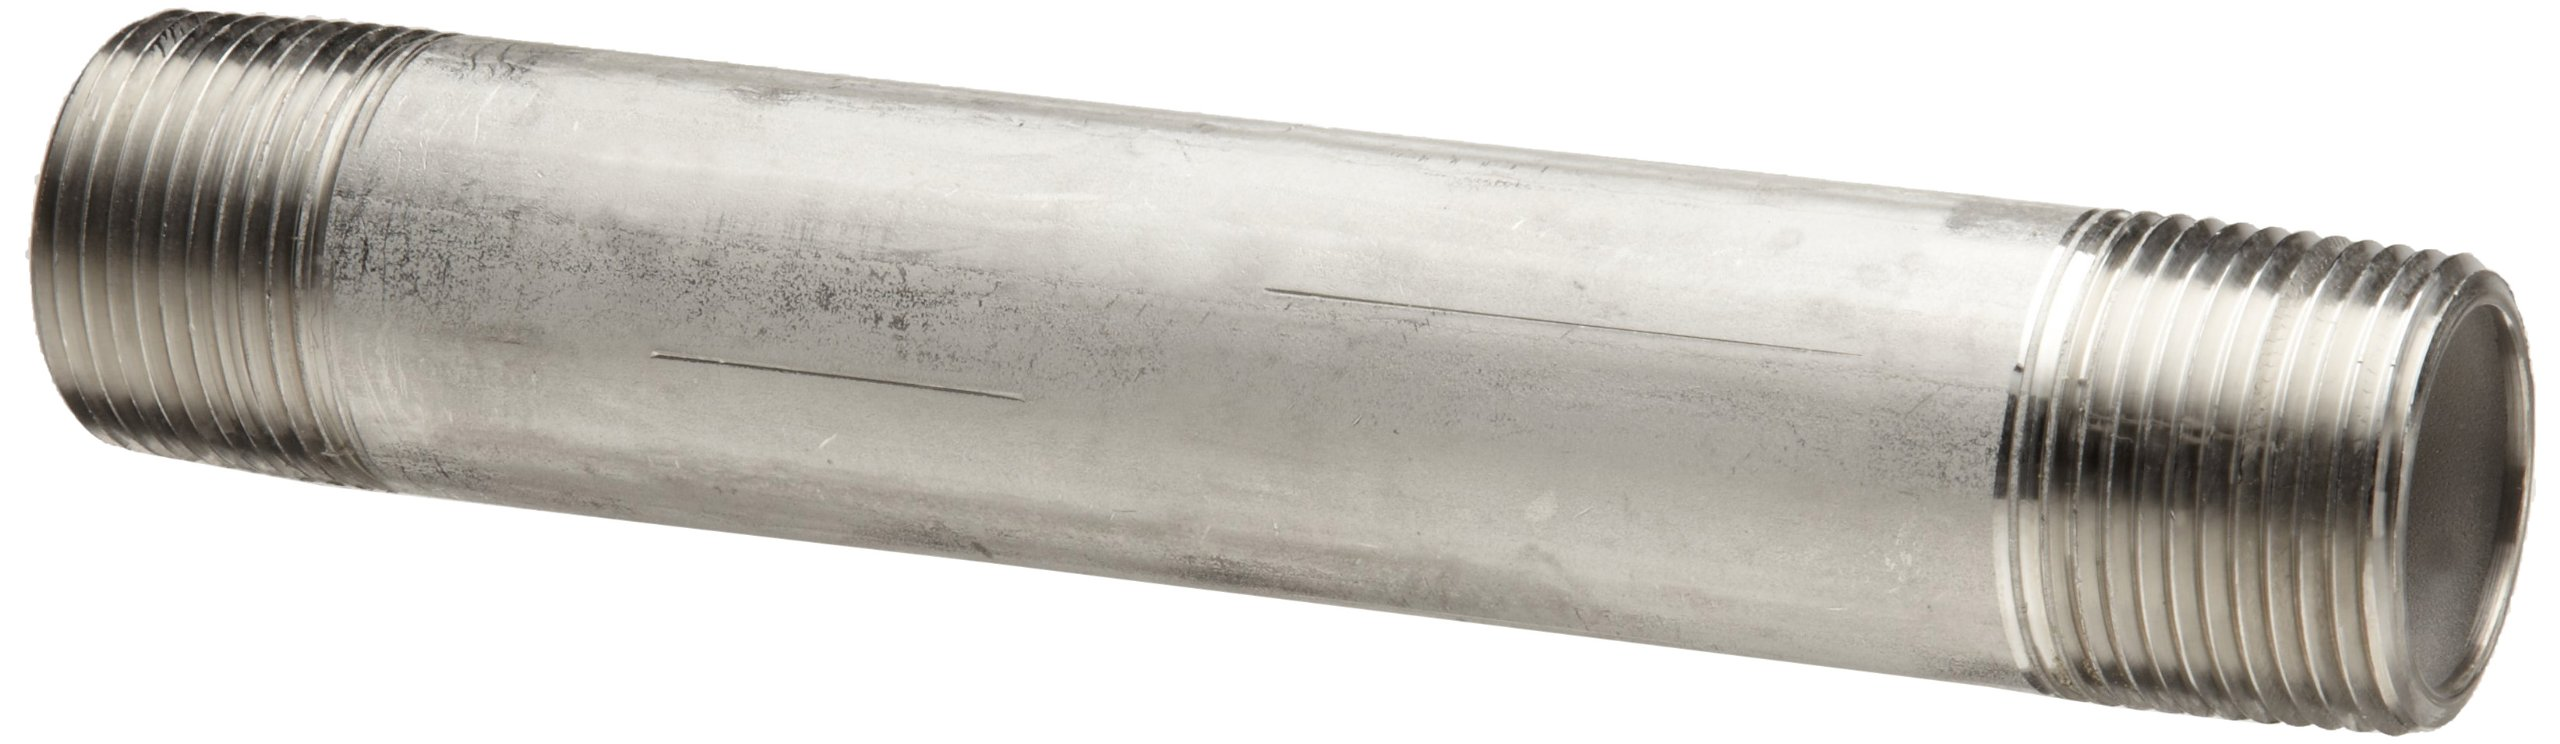 Stainless Steel 316/316L Pipe Fitting, Nipple, Schedule 40 Welded, 3/4'' X 6'' NPT Male